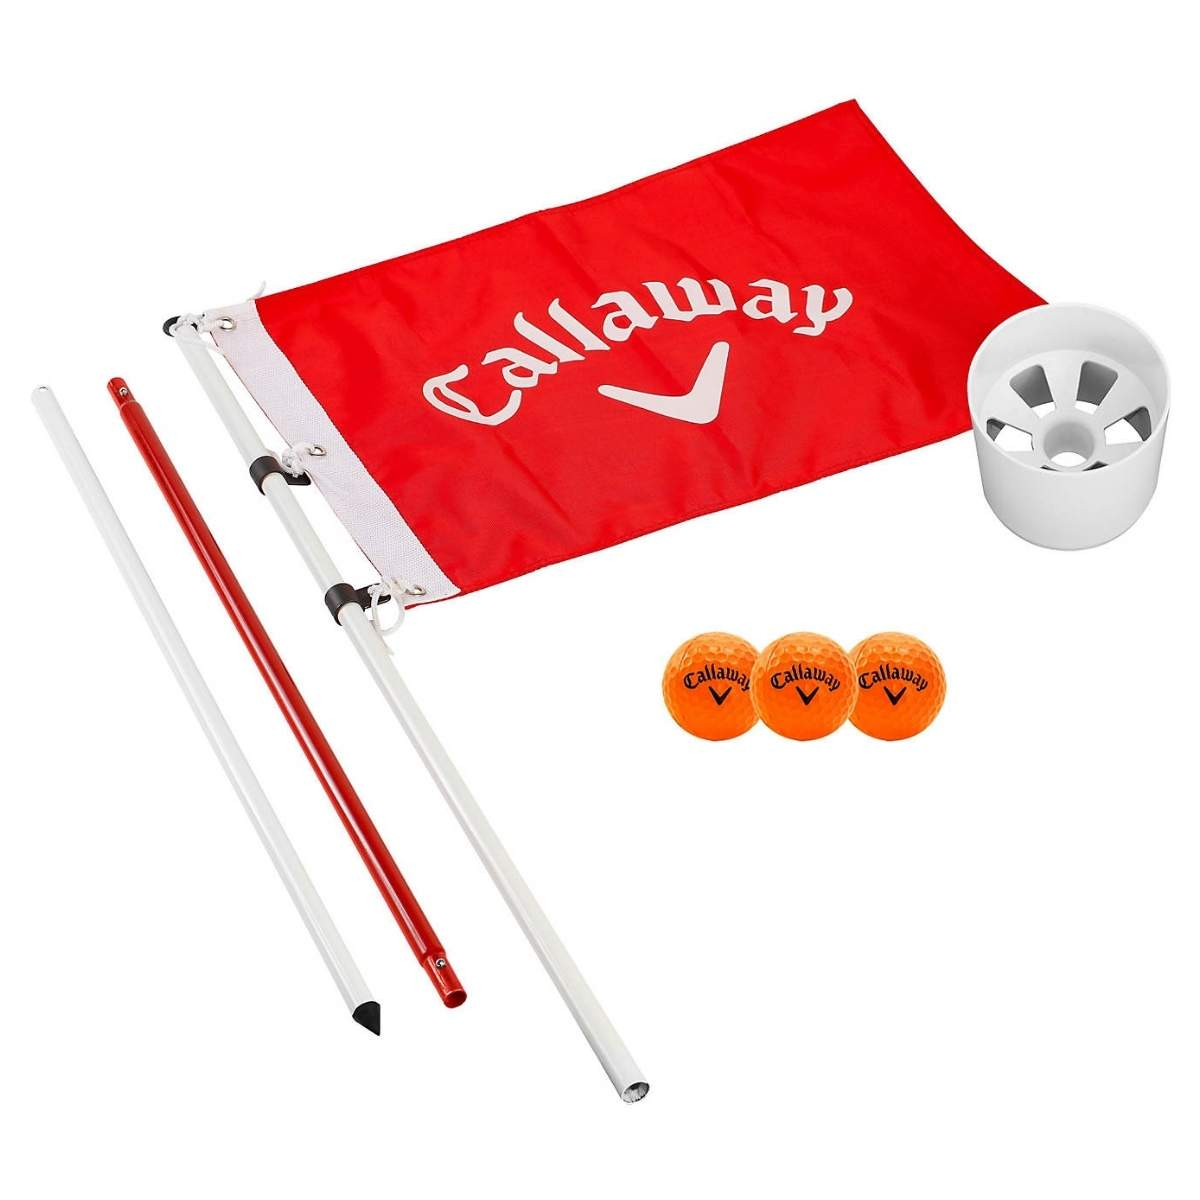 Callaway Golf Closest to the Pin Game Flagpole and Cup Set